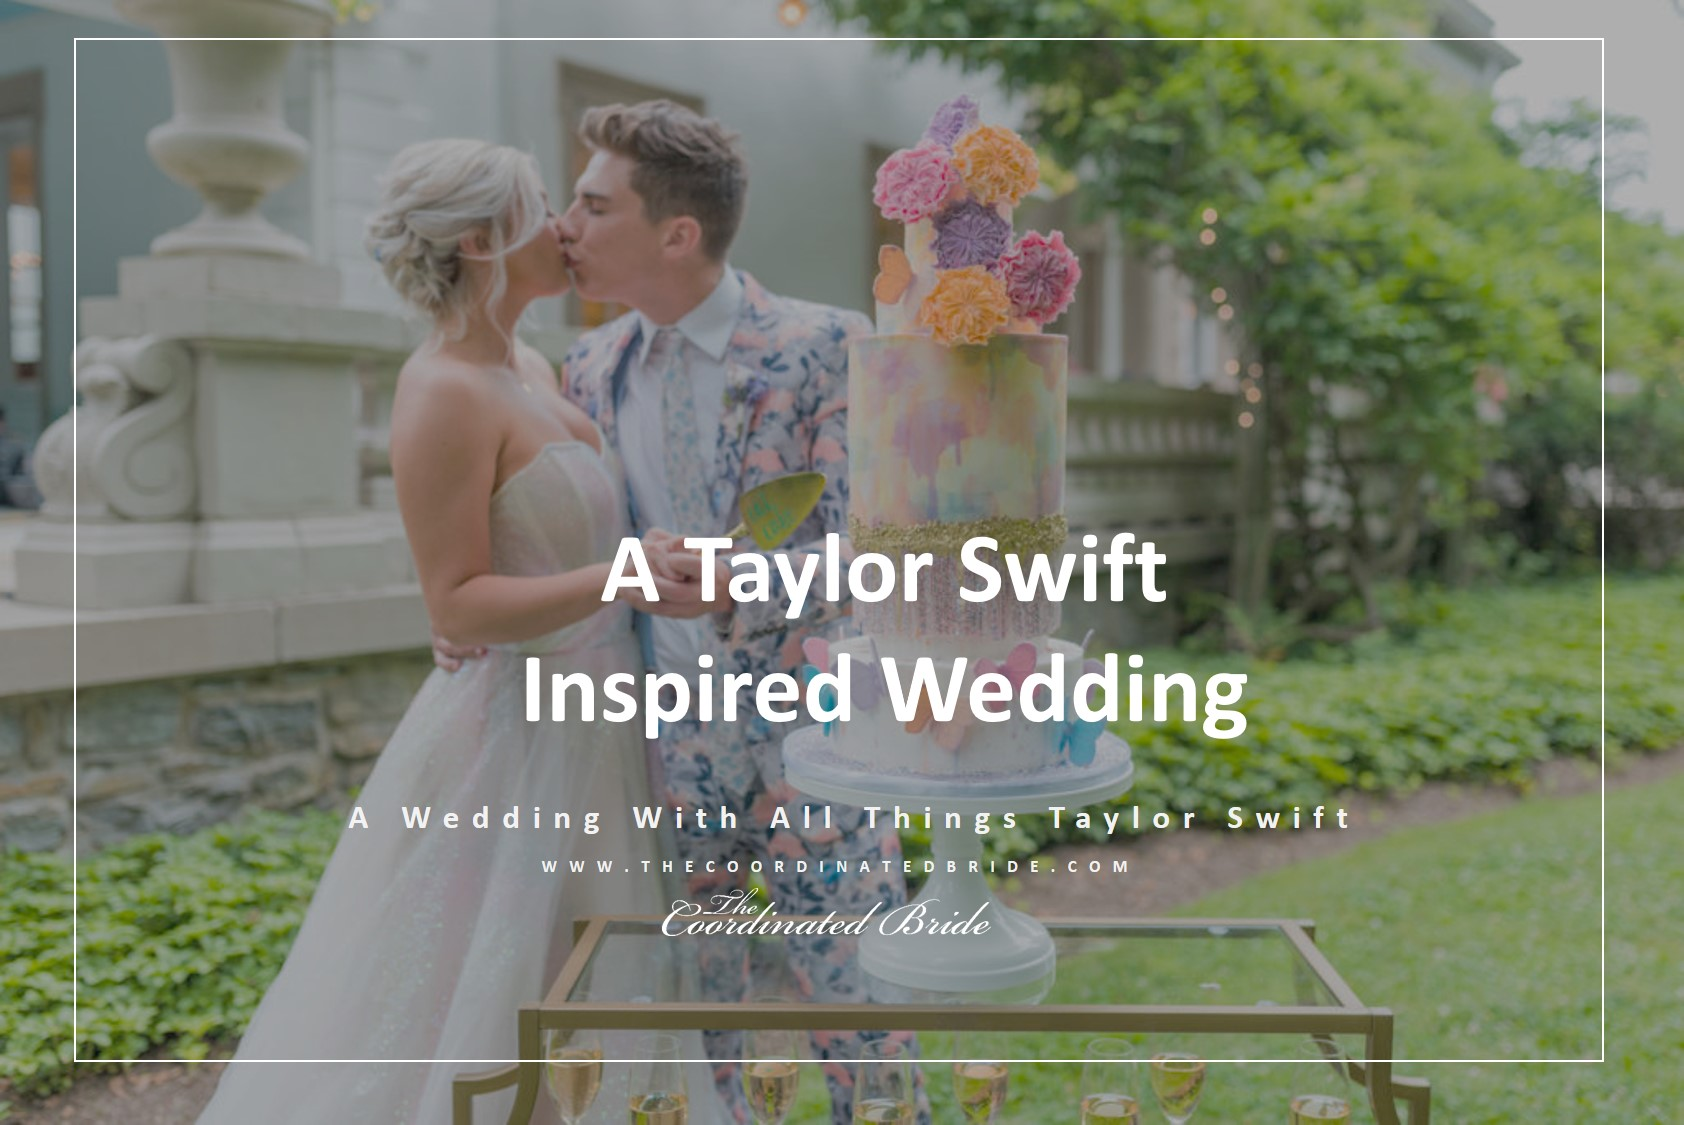 A Taylor Swift Inspired Wedding